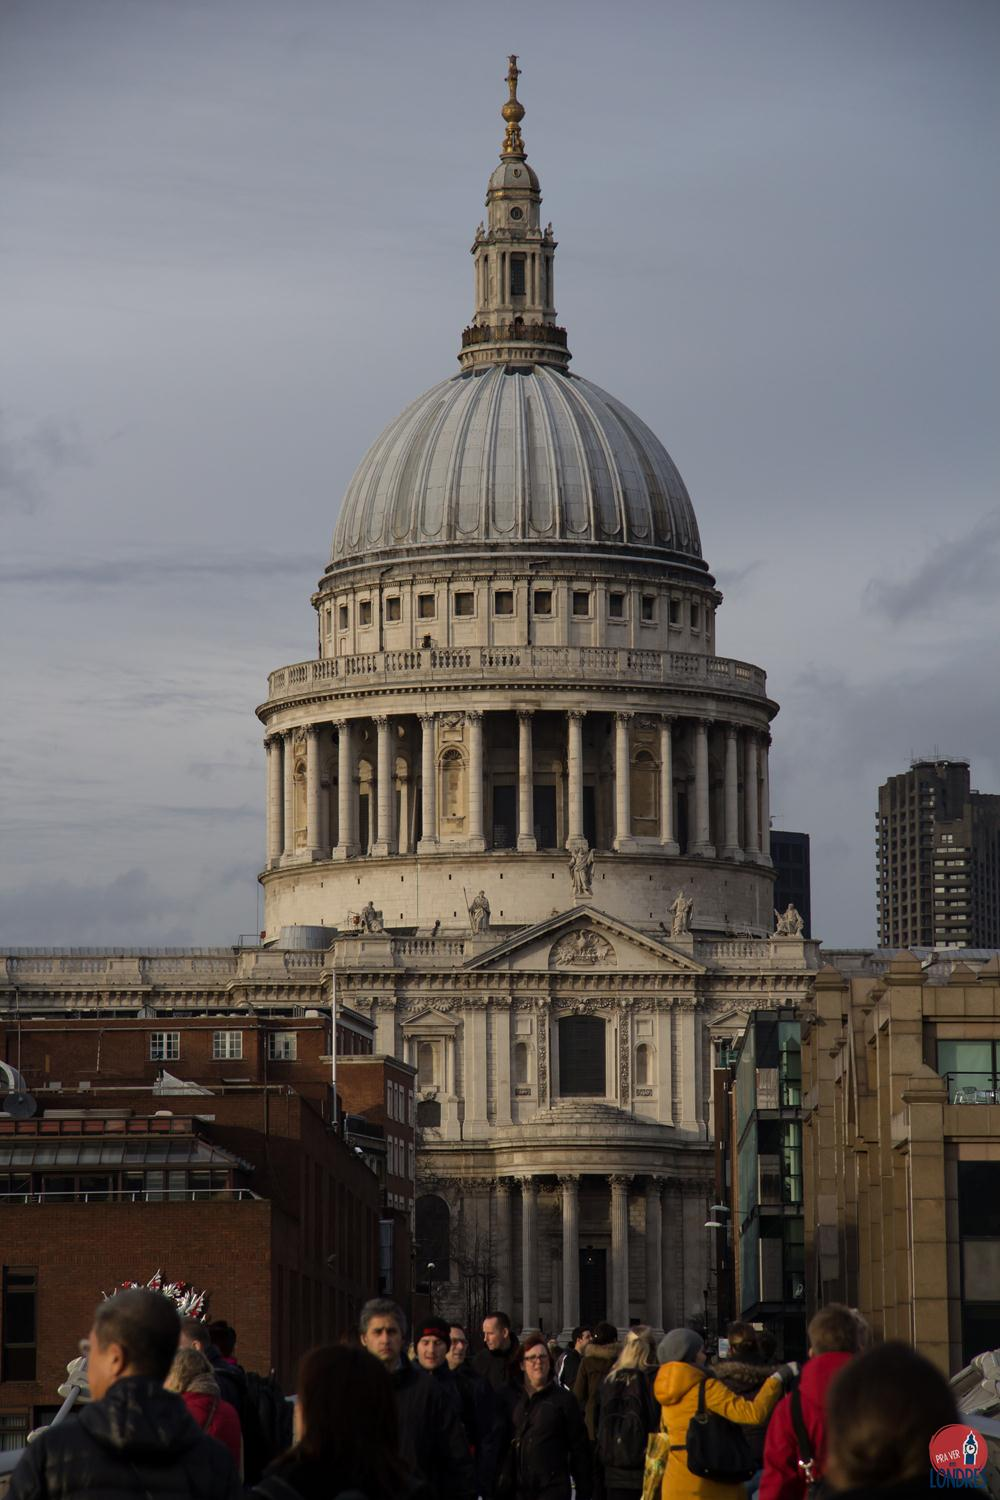 tate modern - museu em londres - st. paul's cathedral